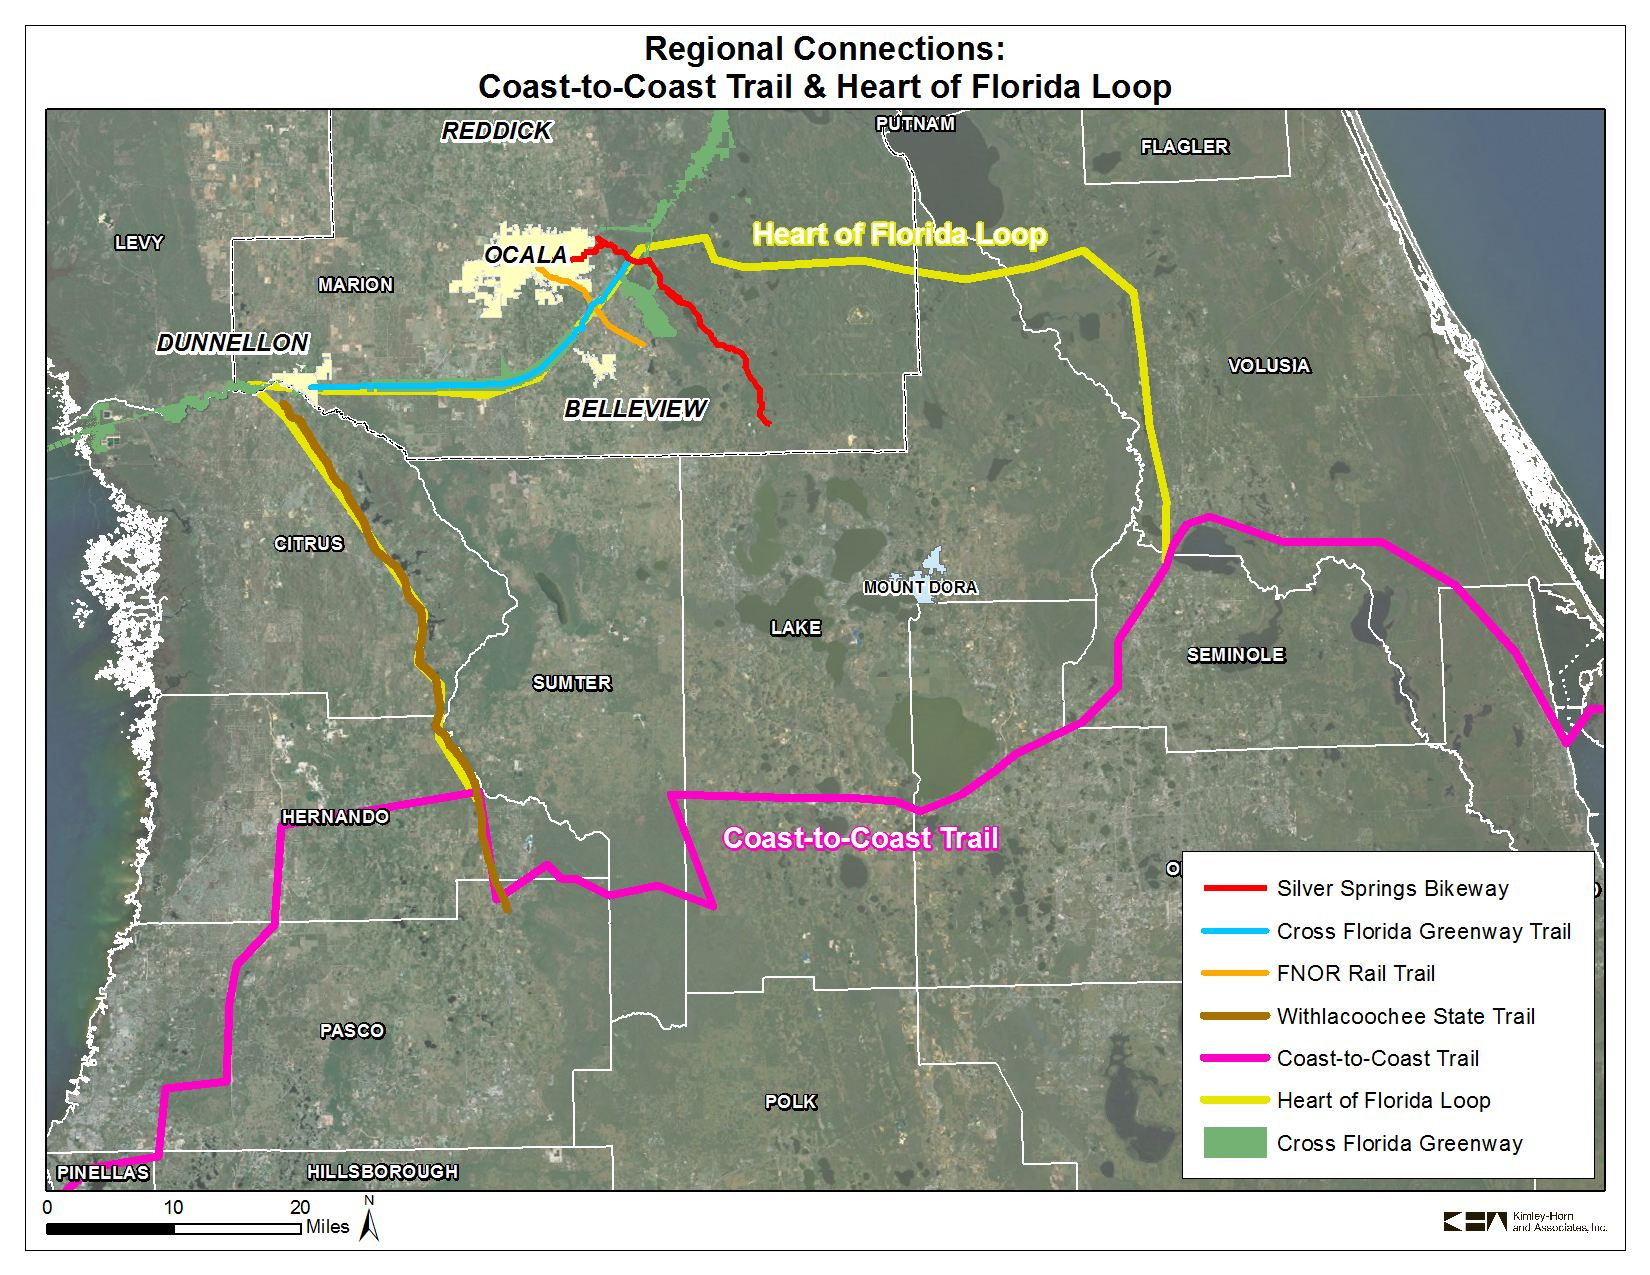 Coast To Coast Trail And Heart Of Florida Loop | 2035 Bicycle And - Rails To Trails Florida Map